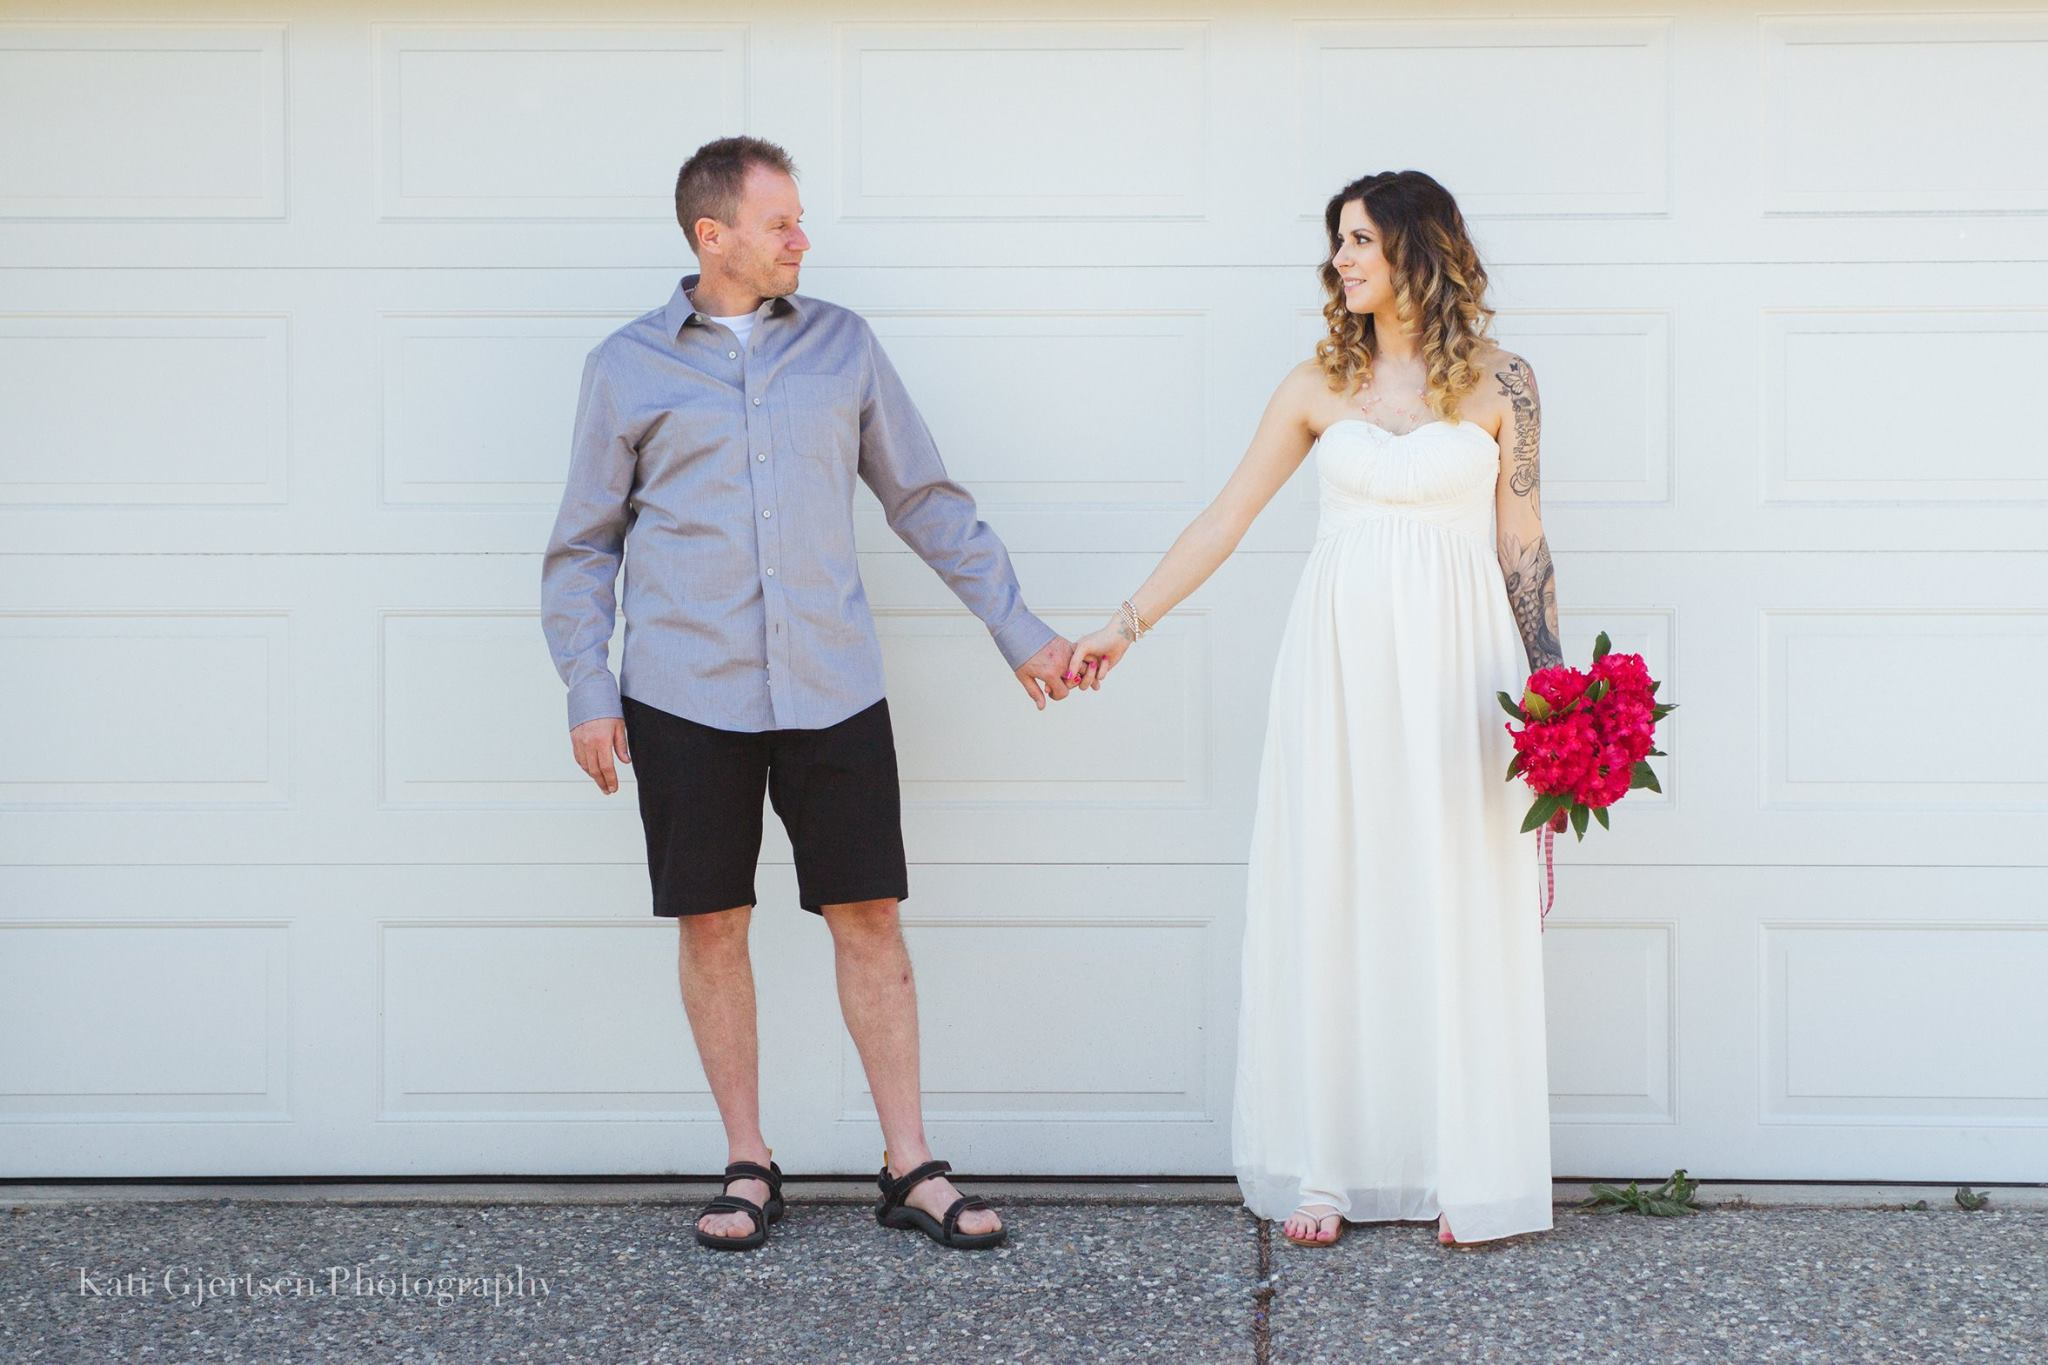 Hayley and Mark Loewen Married after a long story of loss in Hayley's I Am Blessed Mala Beads Blog